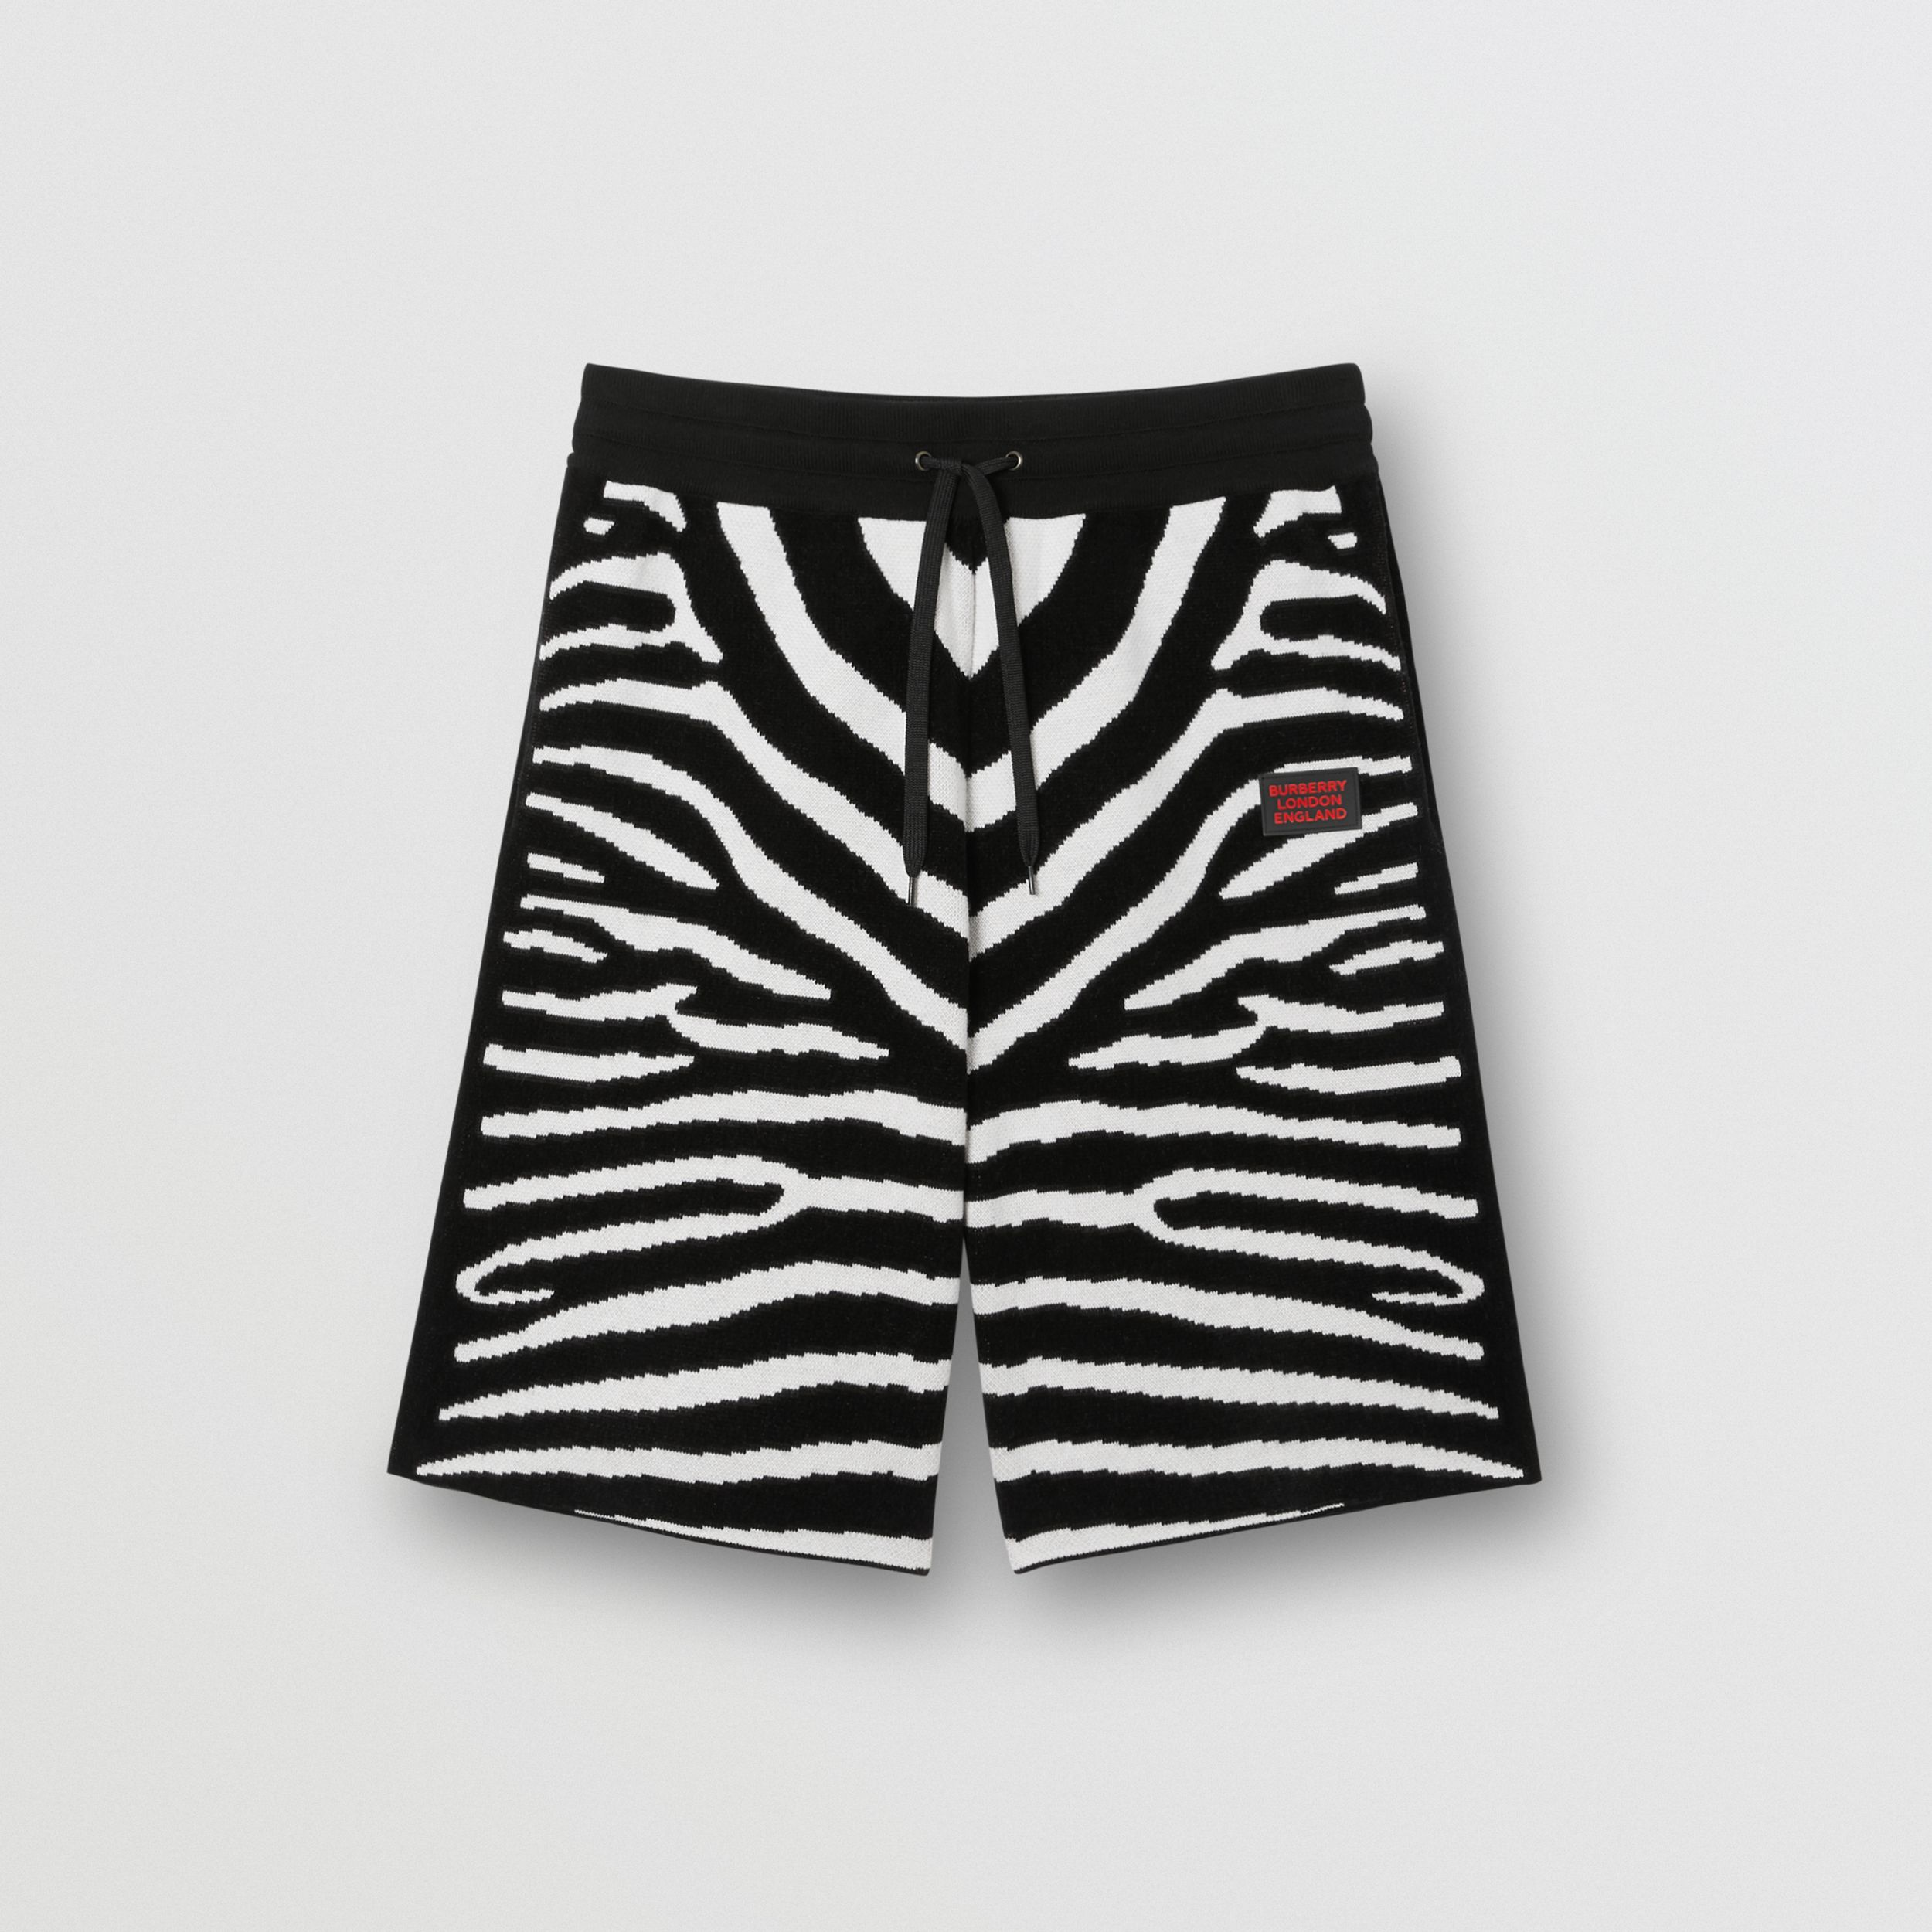 Zebra Wool Blend Jacquard Drawcord Shorts in Black - Men | Burberry - 4